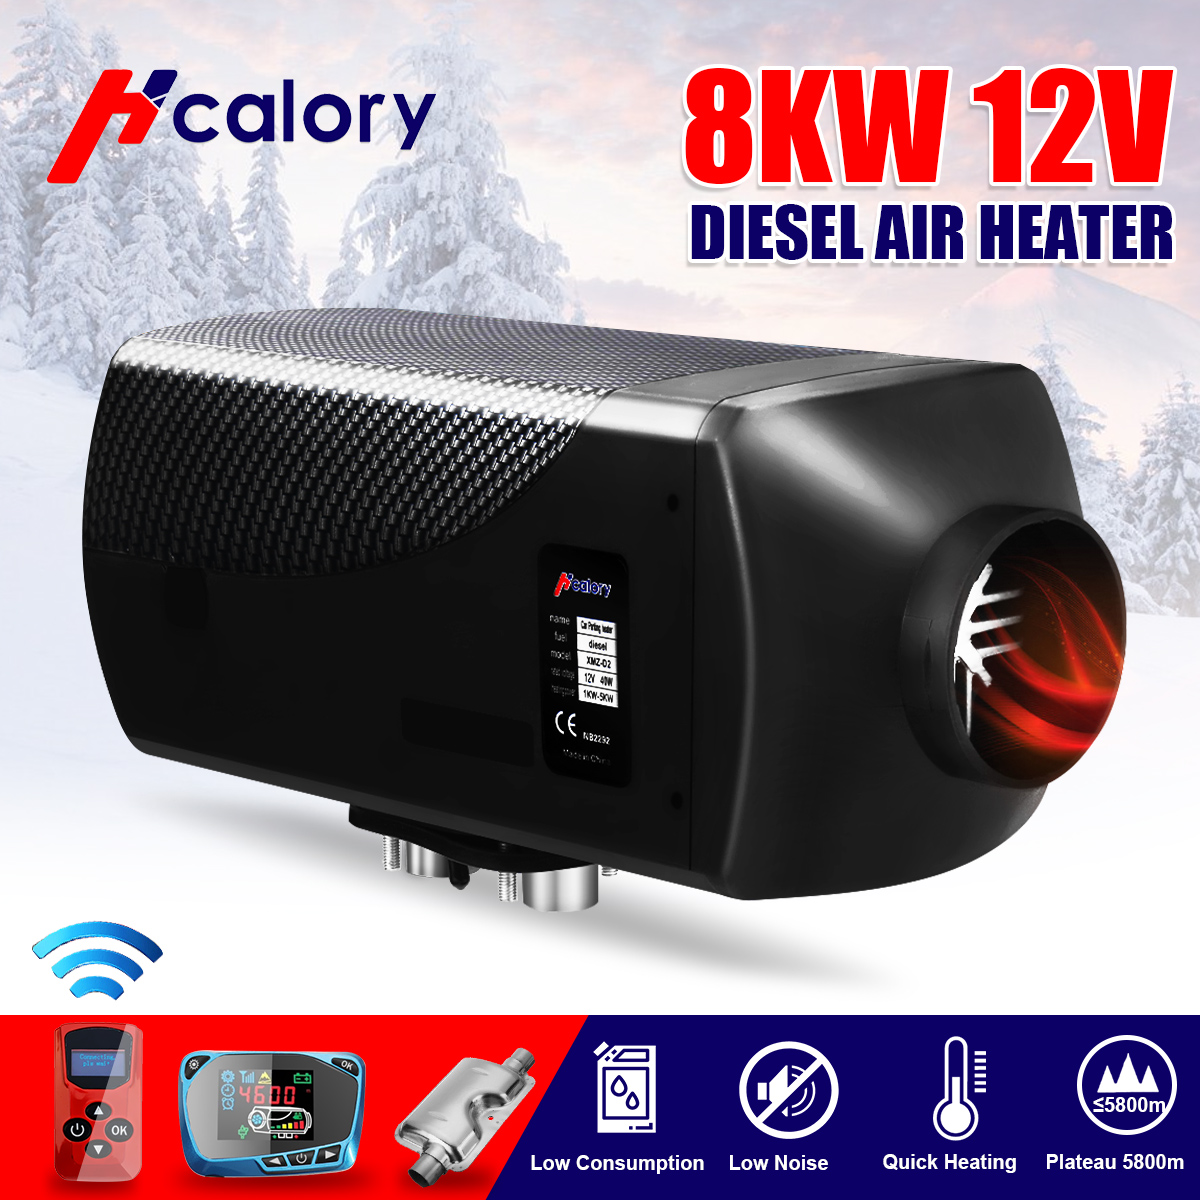 HCalory 12V 8KW Diesels Air Car Heater Silencer <font><b>15L</b></font> <font><b>Tank</b></font> Car Truck Boat Motorhome Parking With Remote Control LCD Monitor image